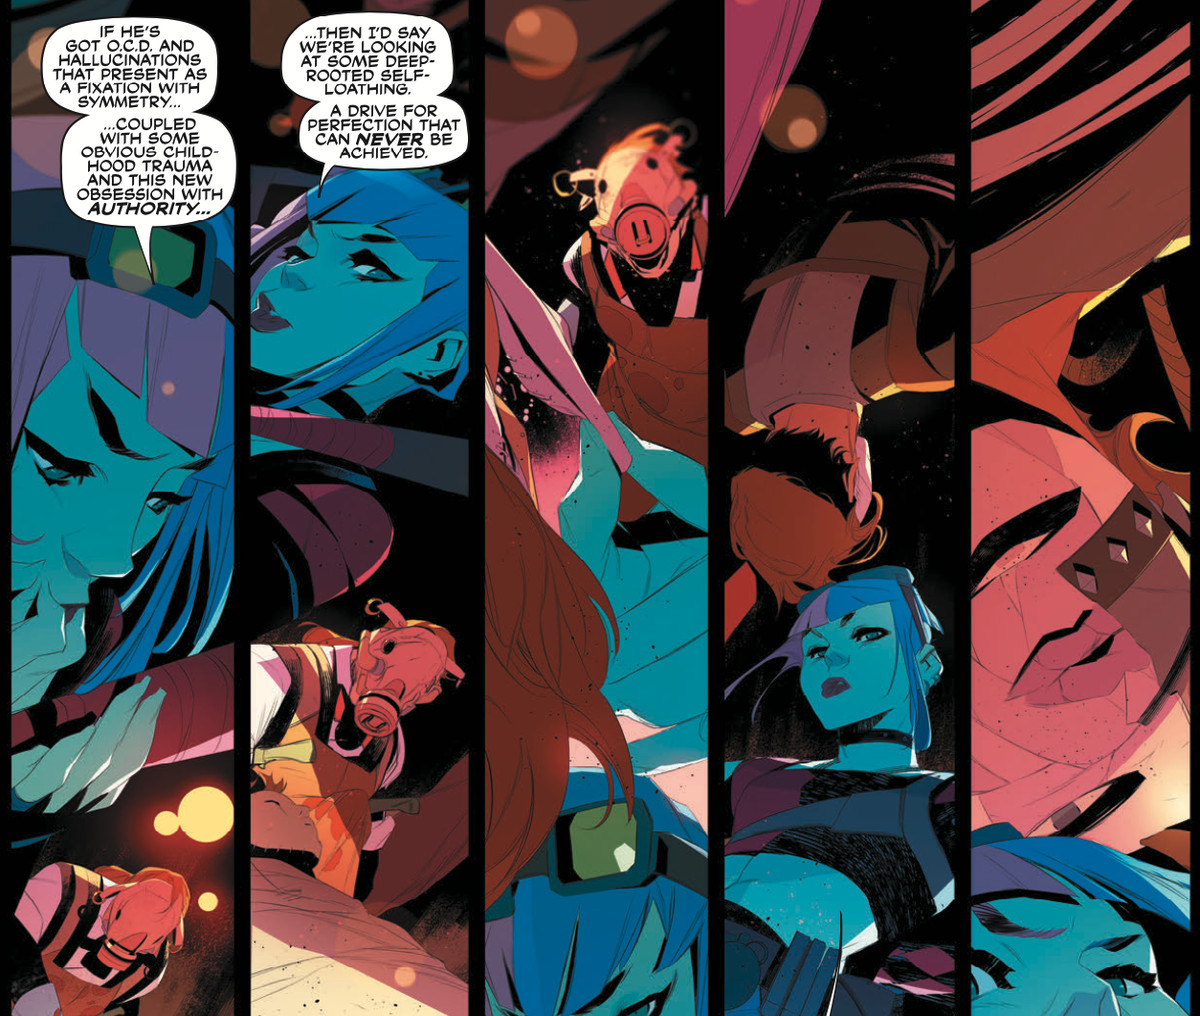 Panels of Harley Quinn talking to a man in a pig mask